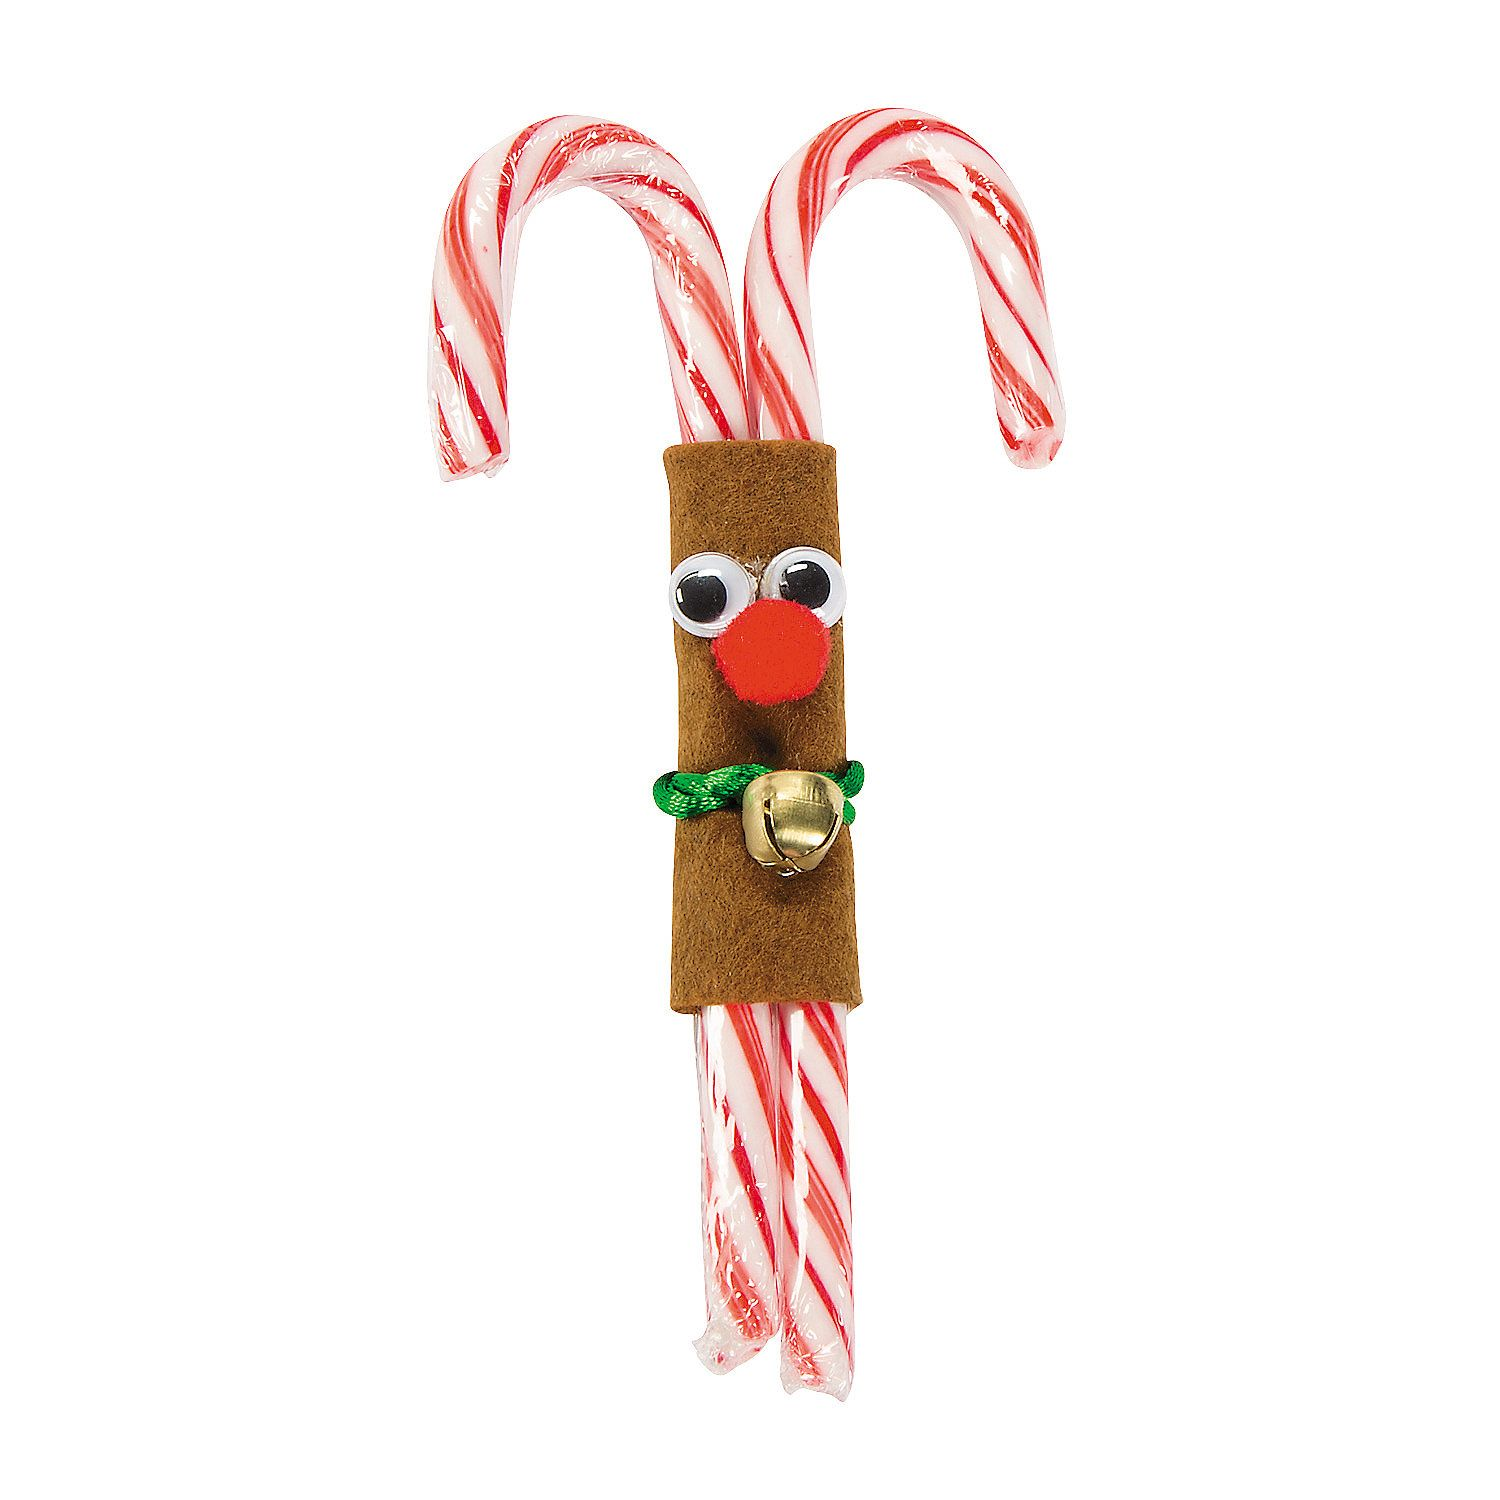 Double Candy Cane Reindeer Craft Kit - OrientalTrading.com